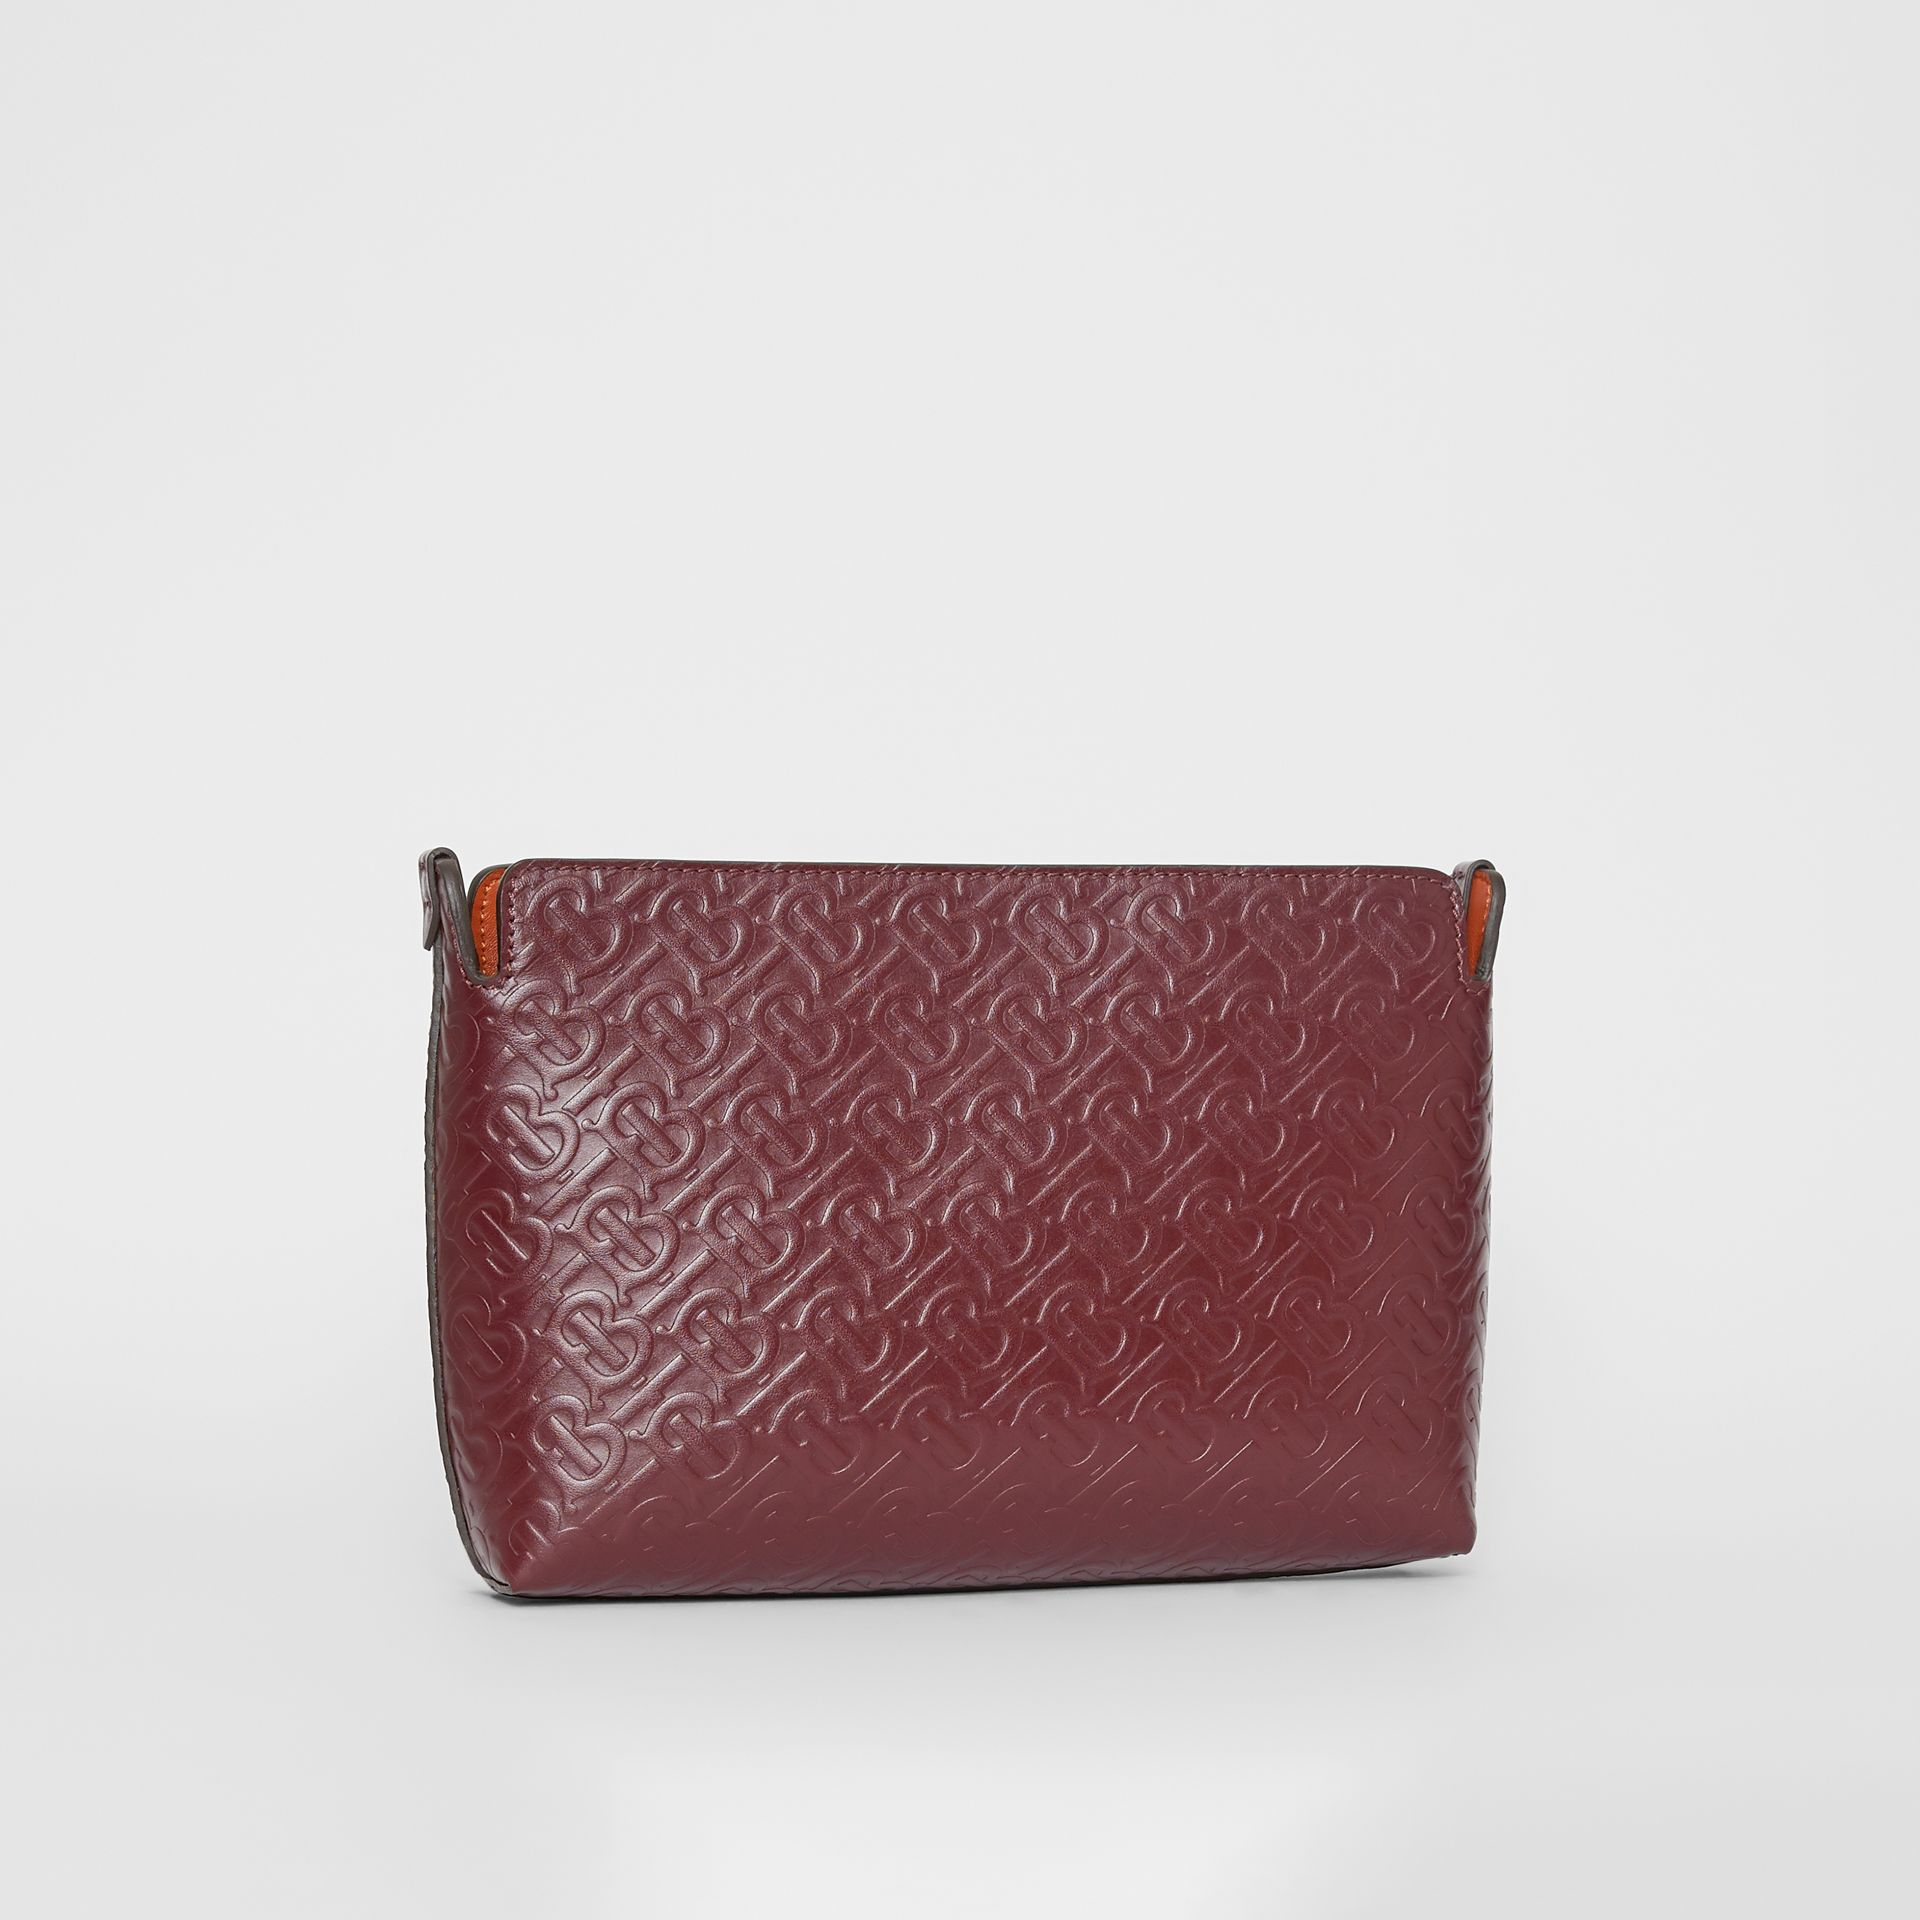 Medium Monogram Leather Clutch in Oxblood - Women | Burberry - gallery image 5